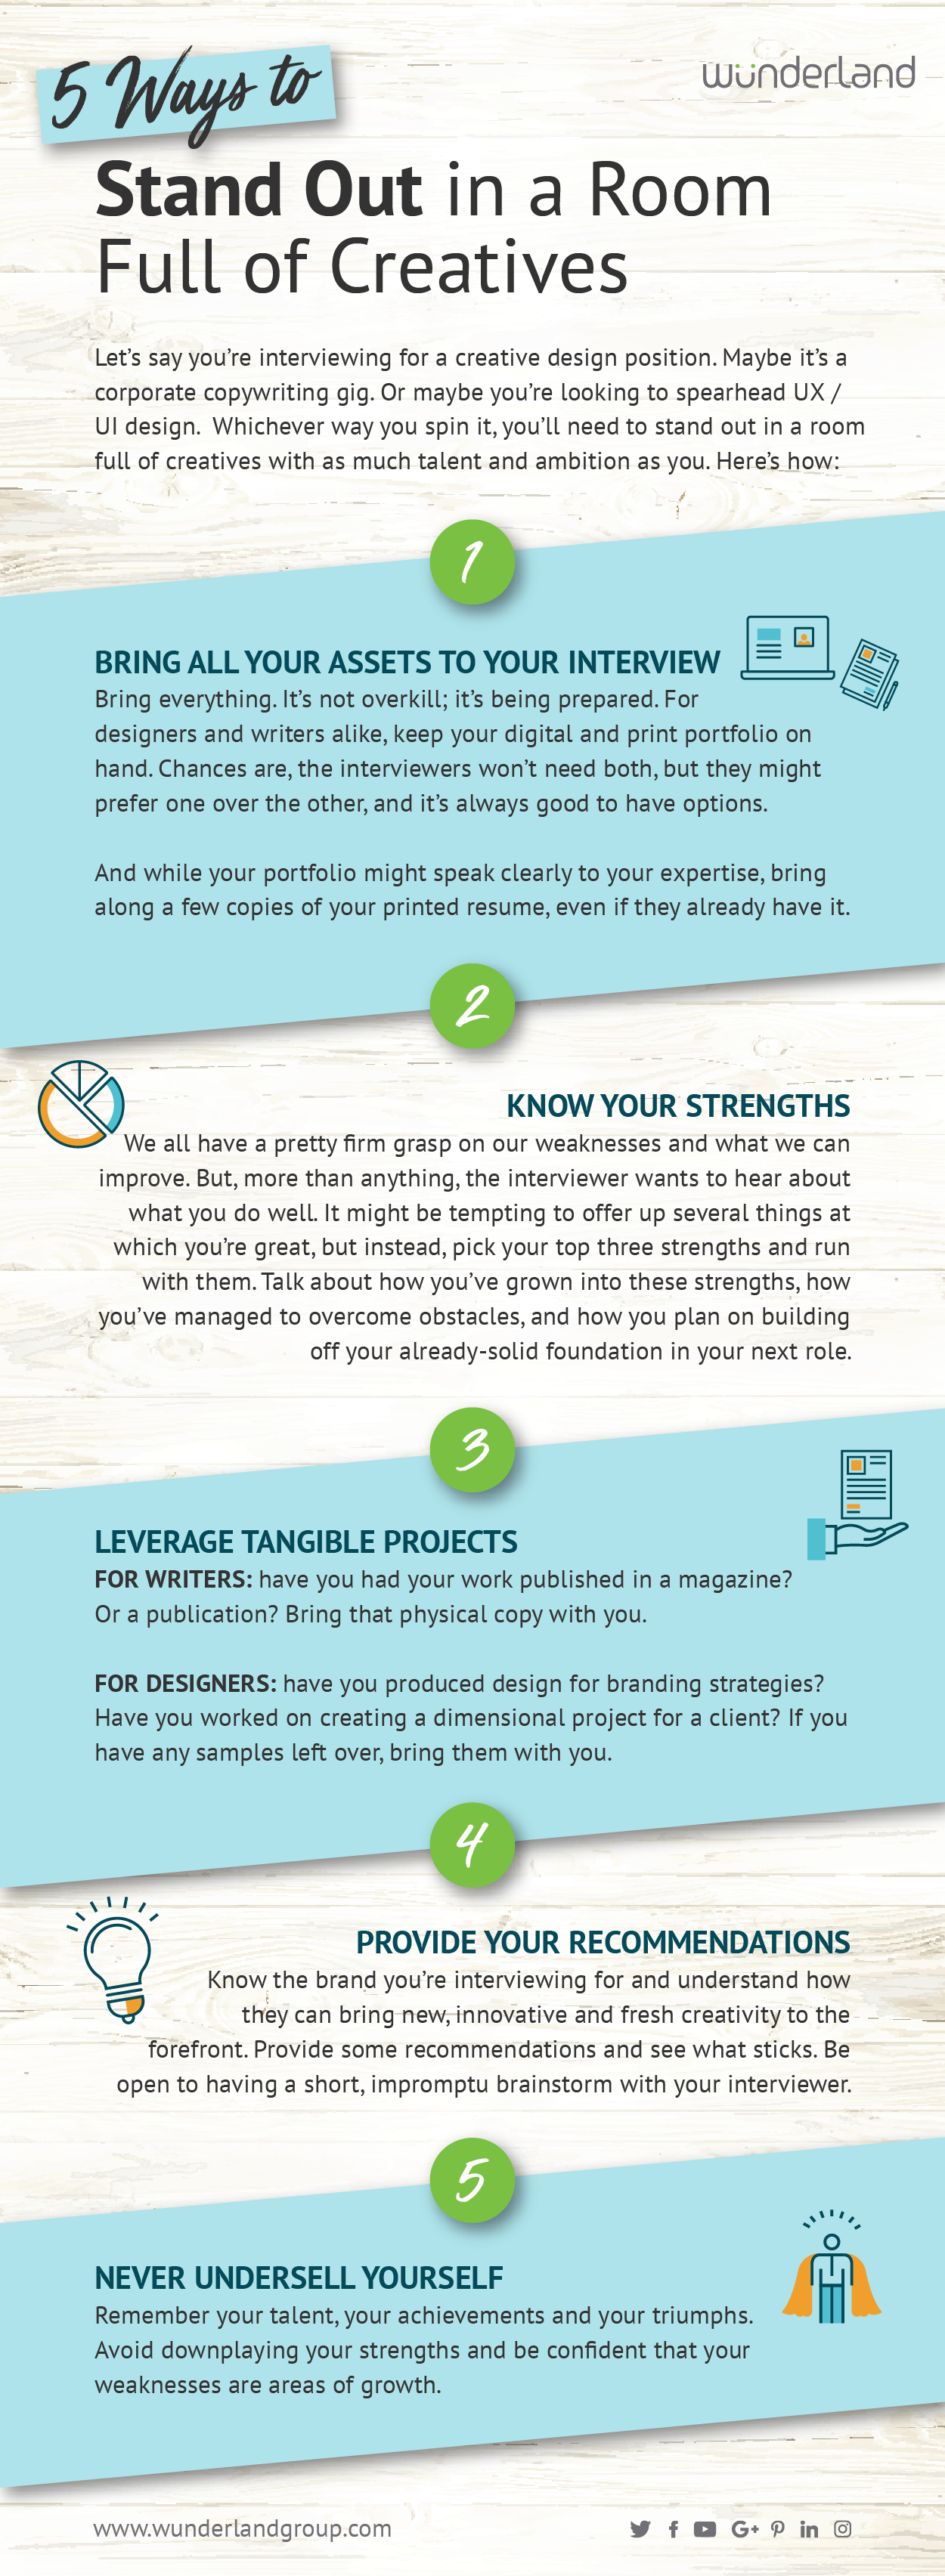 WLG - 5 Ways to Stand Out Blog - 2-20-19_WLG - 5 Ways to Stand Out Blog Image - 2-20-19